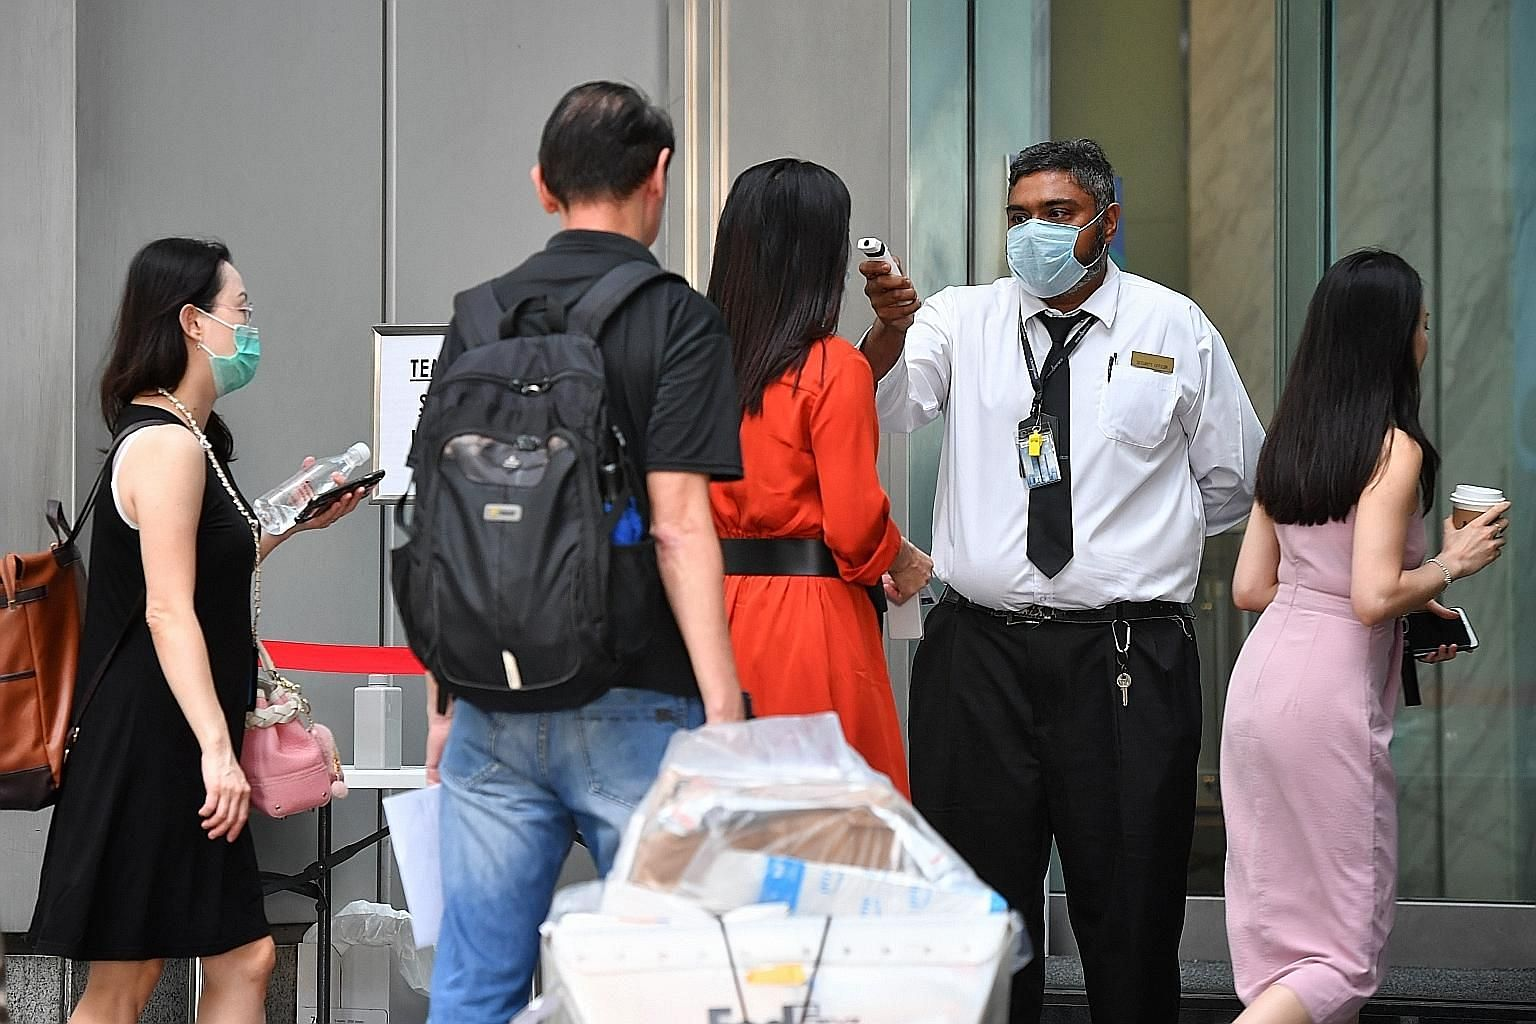 People queueing to get their temperatures taken at One Raffles Place yesterday. Snaking queues were seen at places like Raffles Place and Suntec City as temperature checks and visitor screening were carried out.